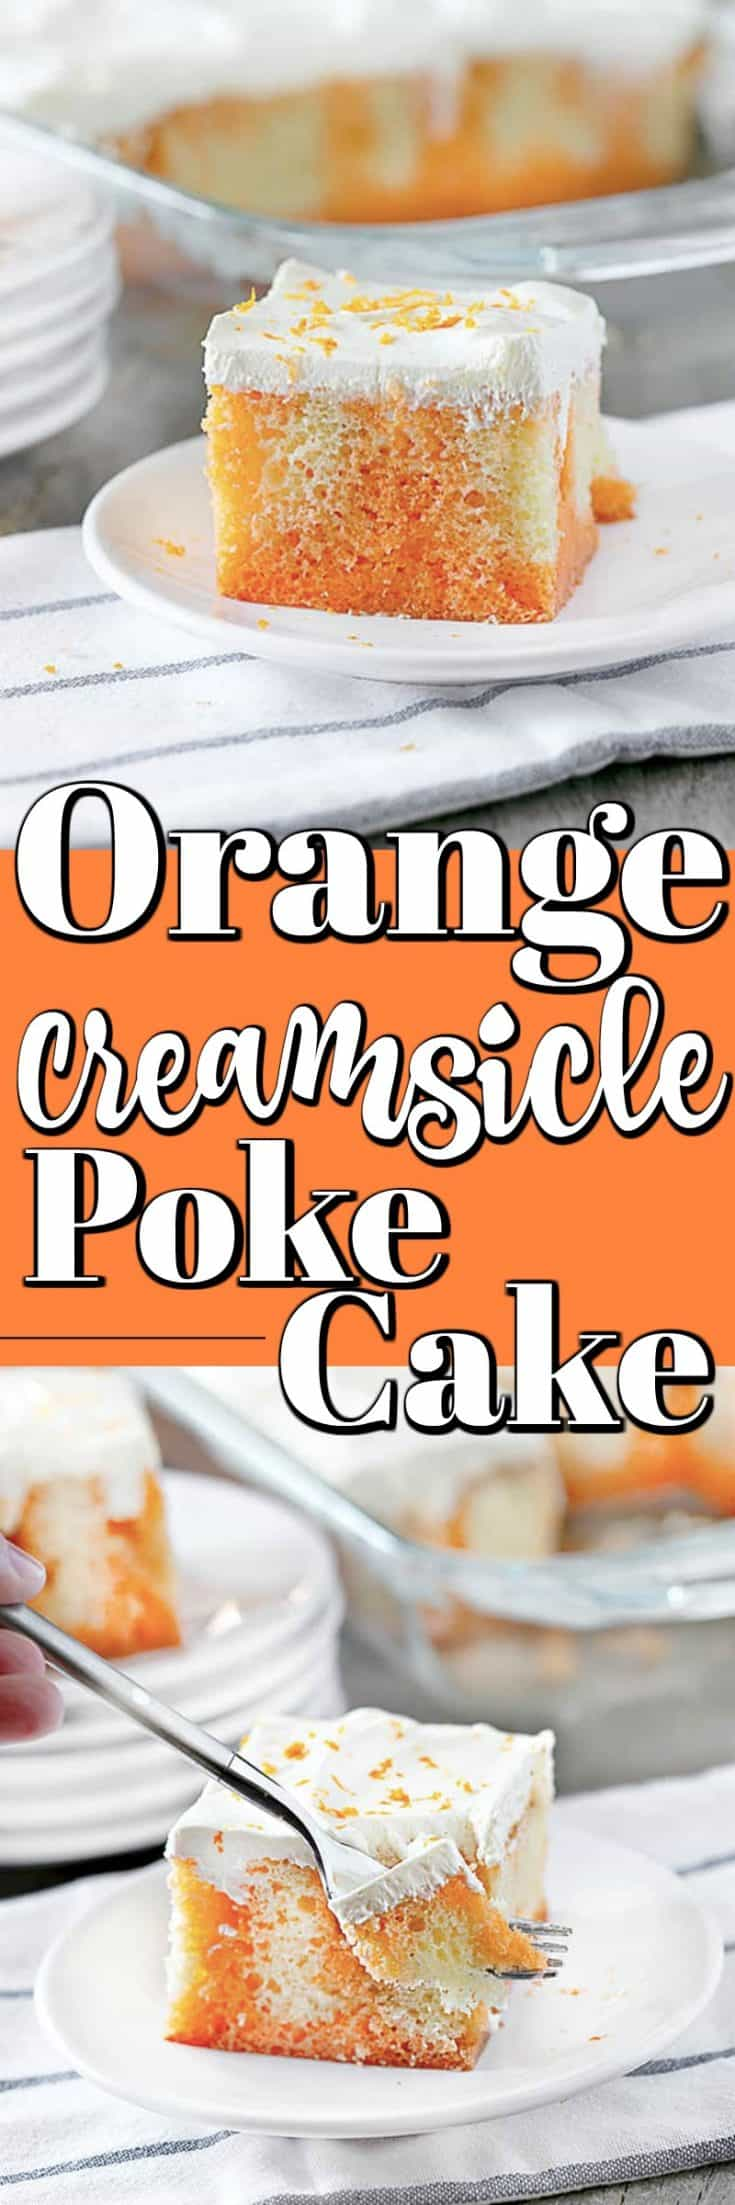 This amazing Orange Creamsicle Poke Cake is so easy to make but a real show stopper to serve!! #creamsicle #pokecake #orange